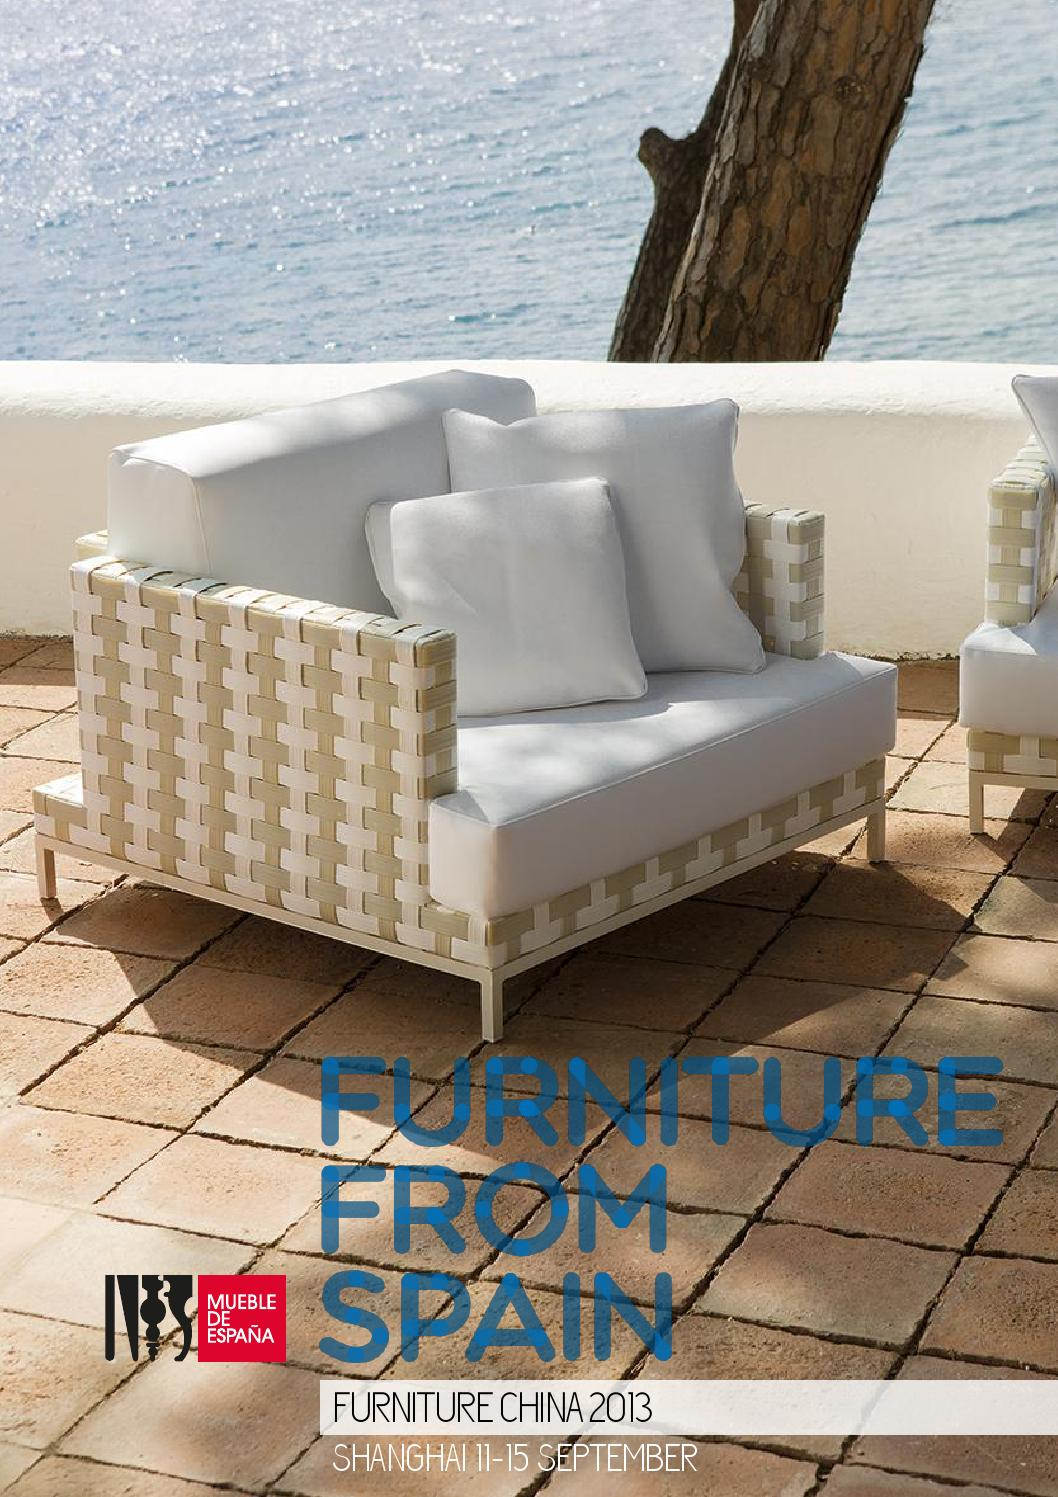 Catalogue furniture china 2013 by furniture from spain issuu - Resource furniture espana ...